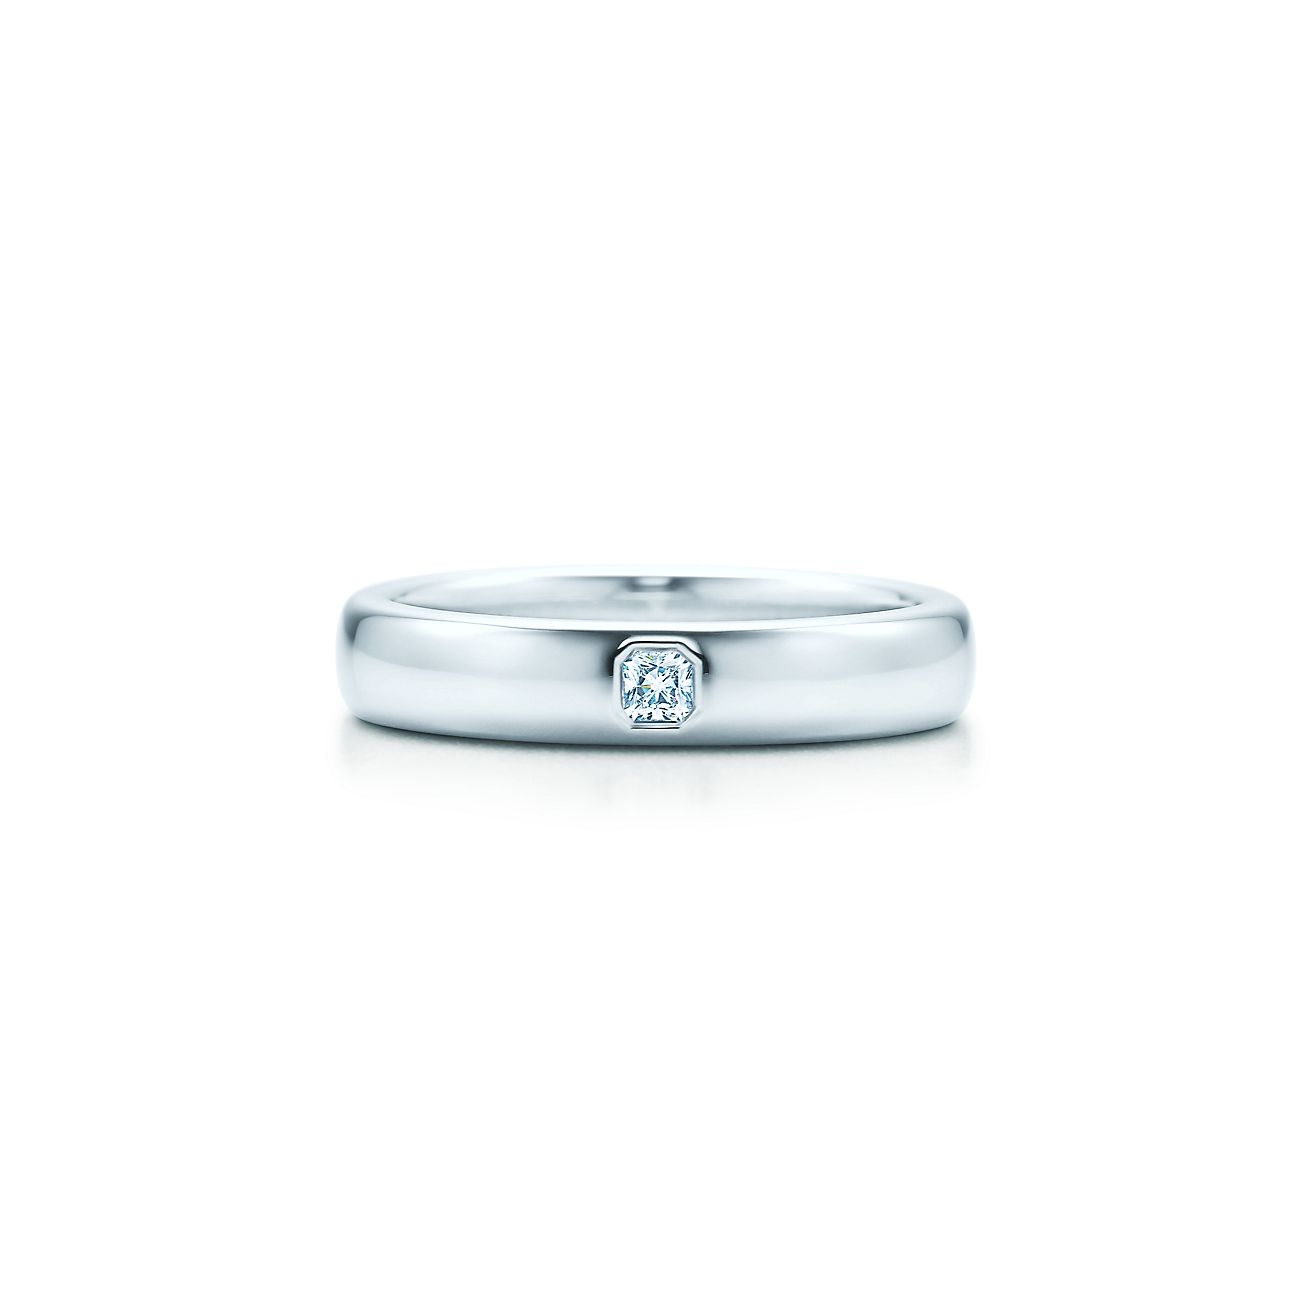 Tiffany Clic Wedding Band Ring In Platinum With A Diamond 4 Mm Wide Co